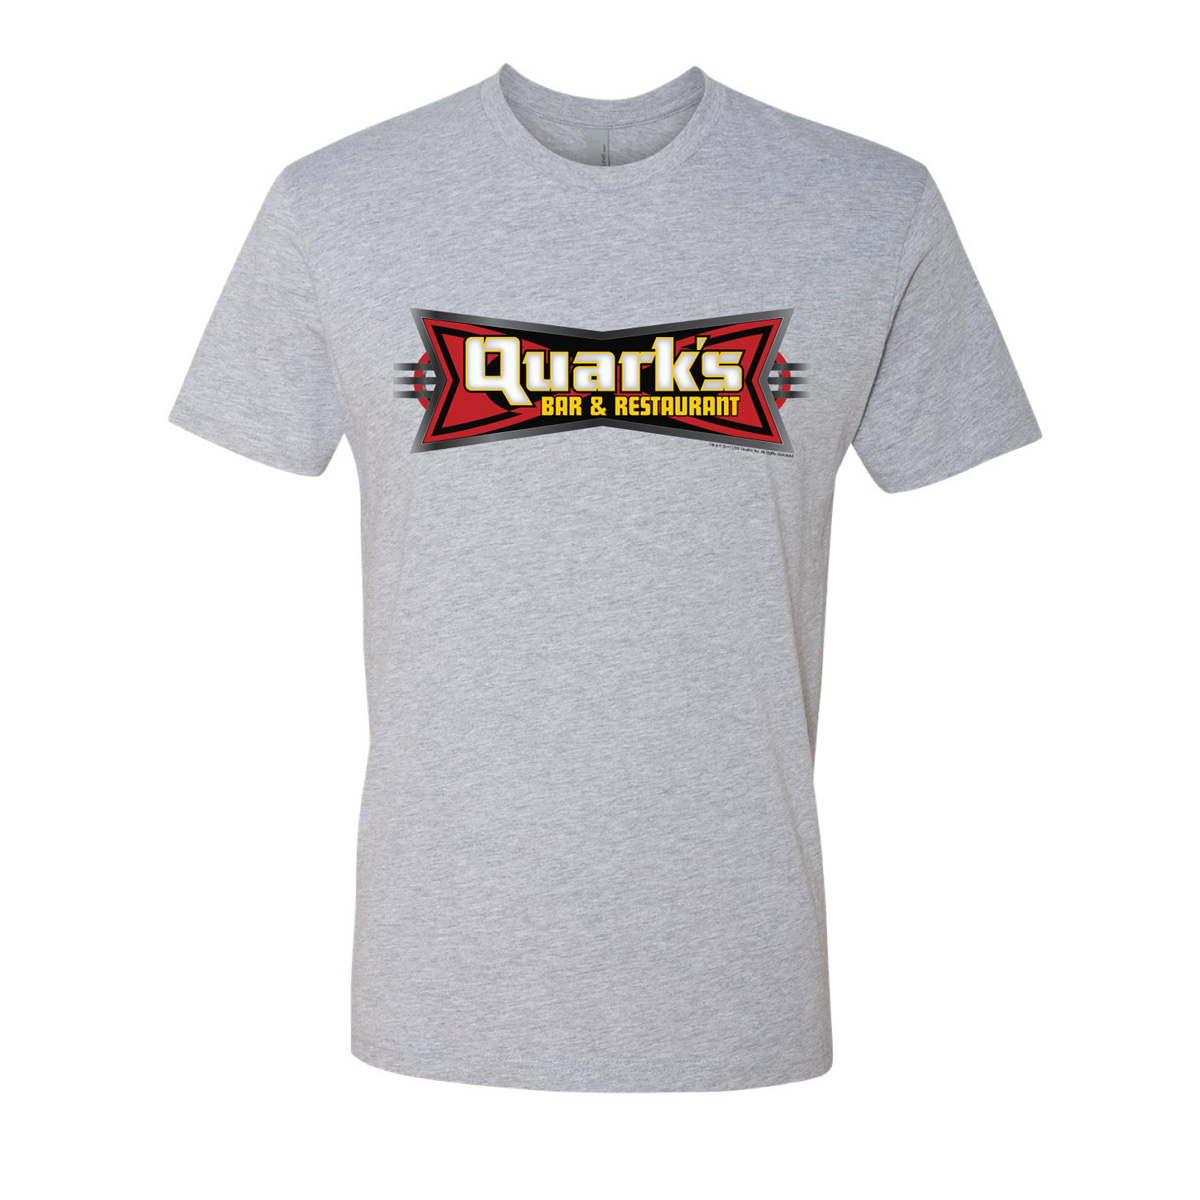 Star Trek Deep Space 9 Quark's Bar & Restaurant T-Shirt